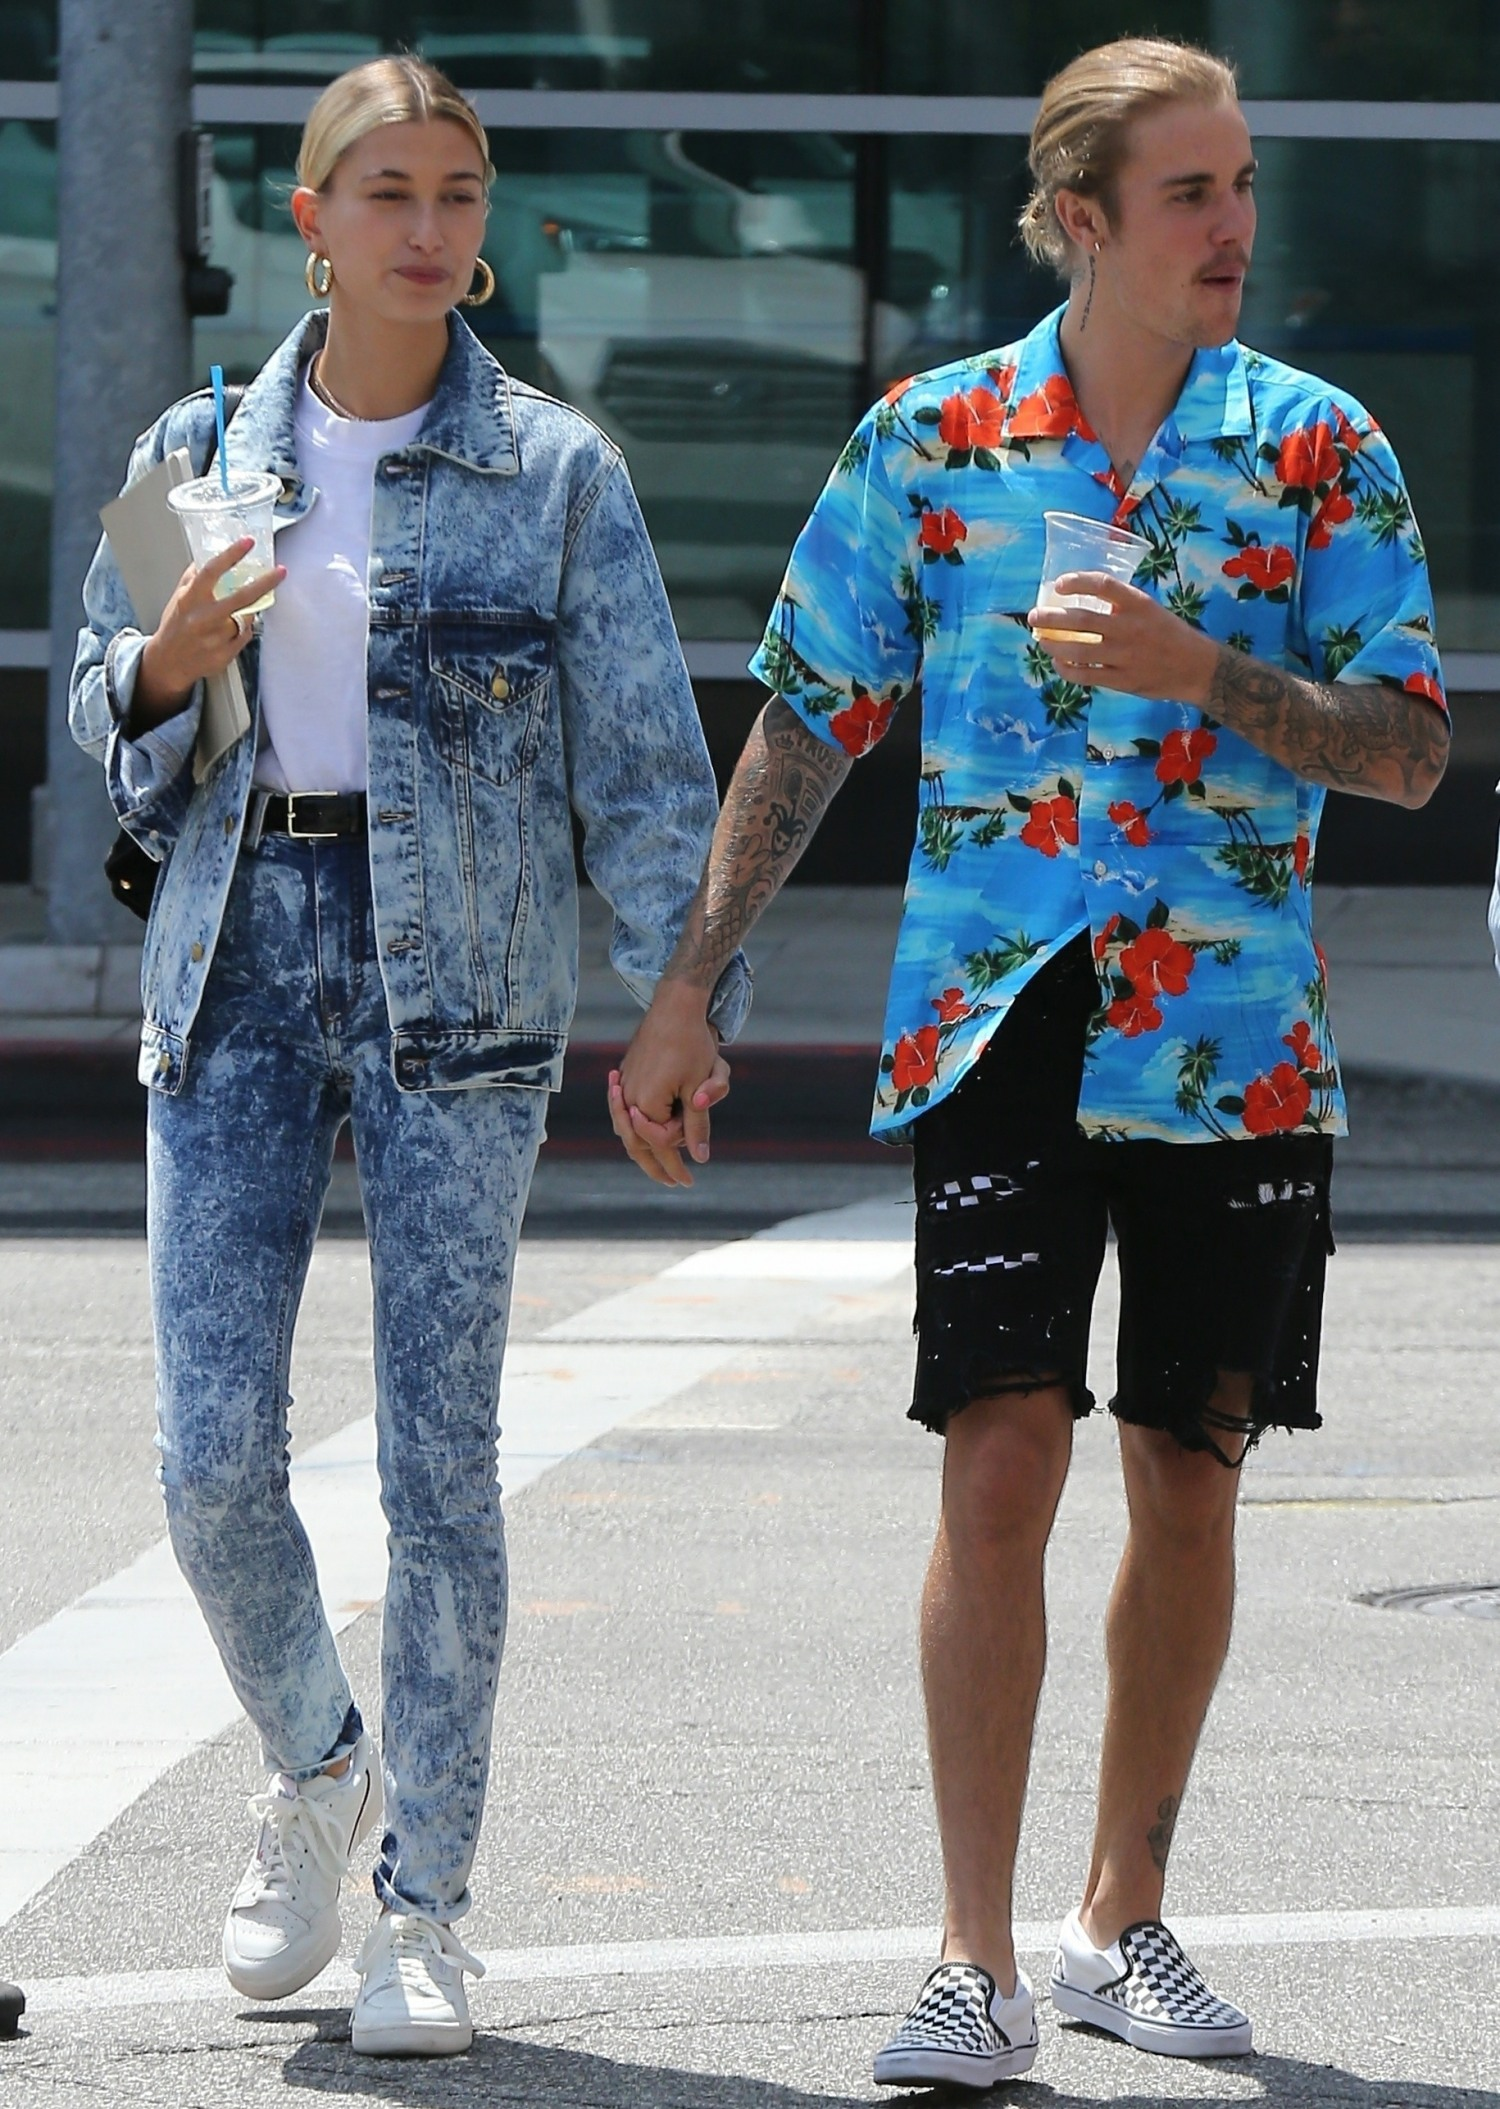 Justin Bieber enjoys a morning out with his fiancee Hailey Baldwin and friends